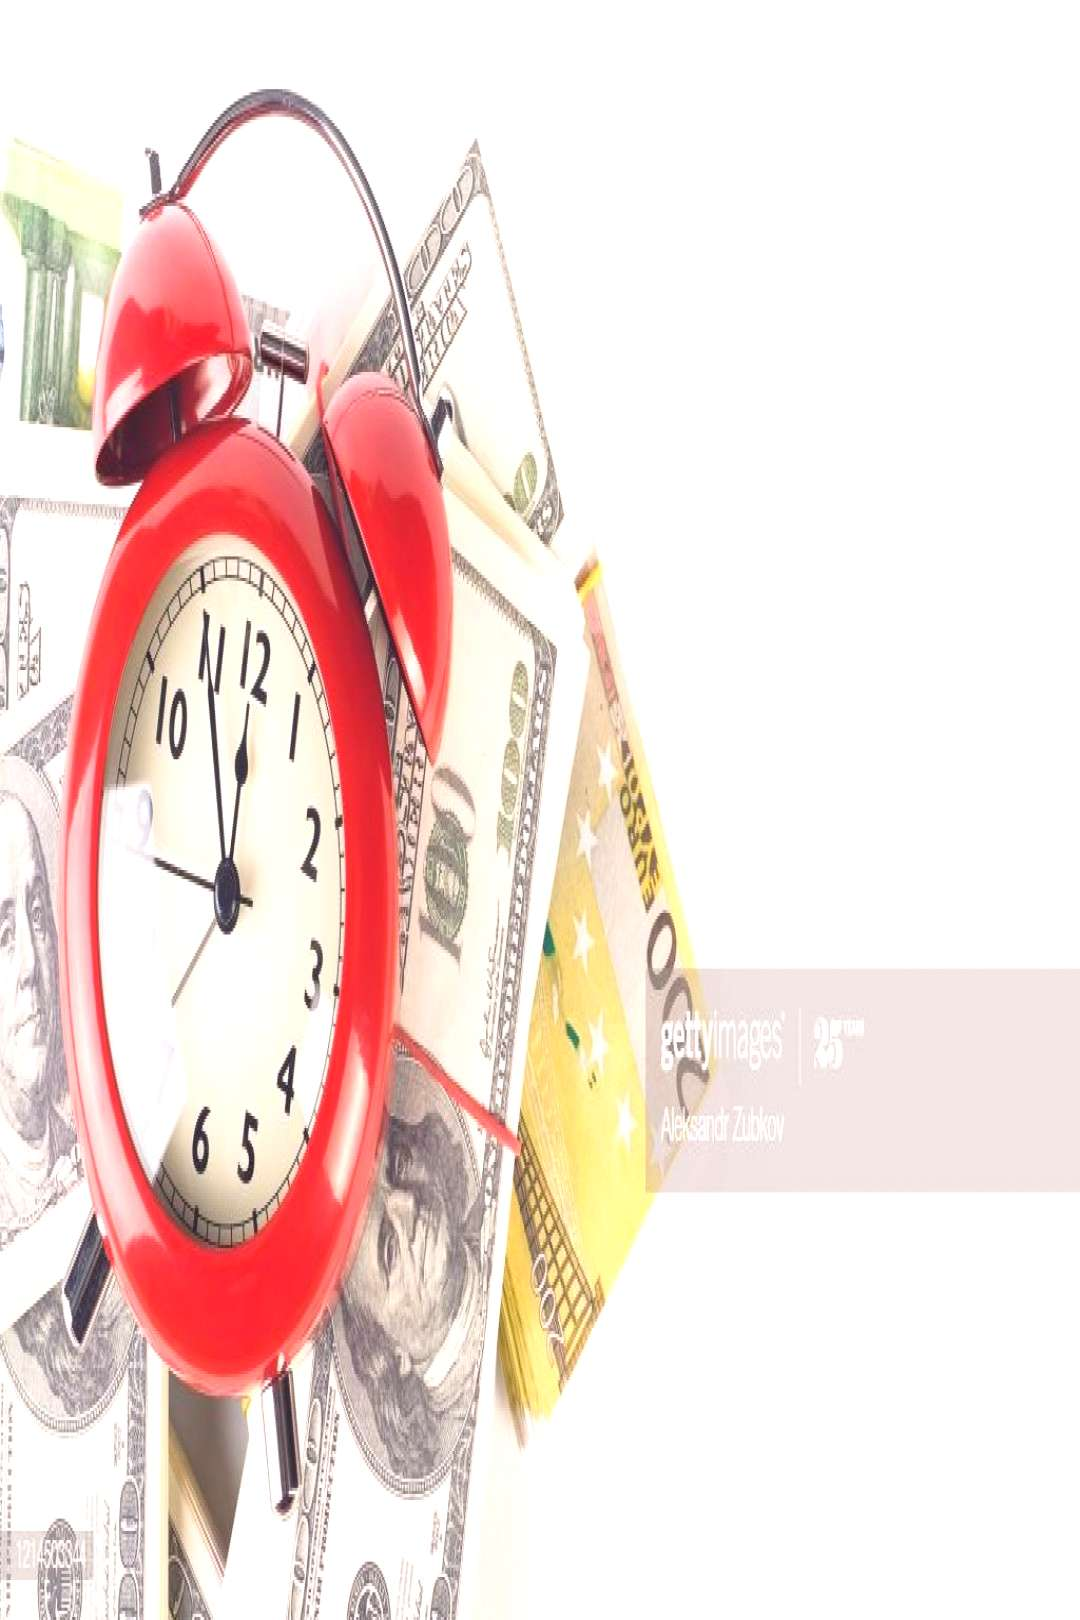 Bright Red Alarm Clock In Retro Style On A Pile Of Paper Dollars And Euros Time ,